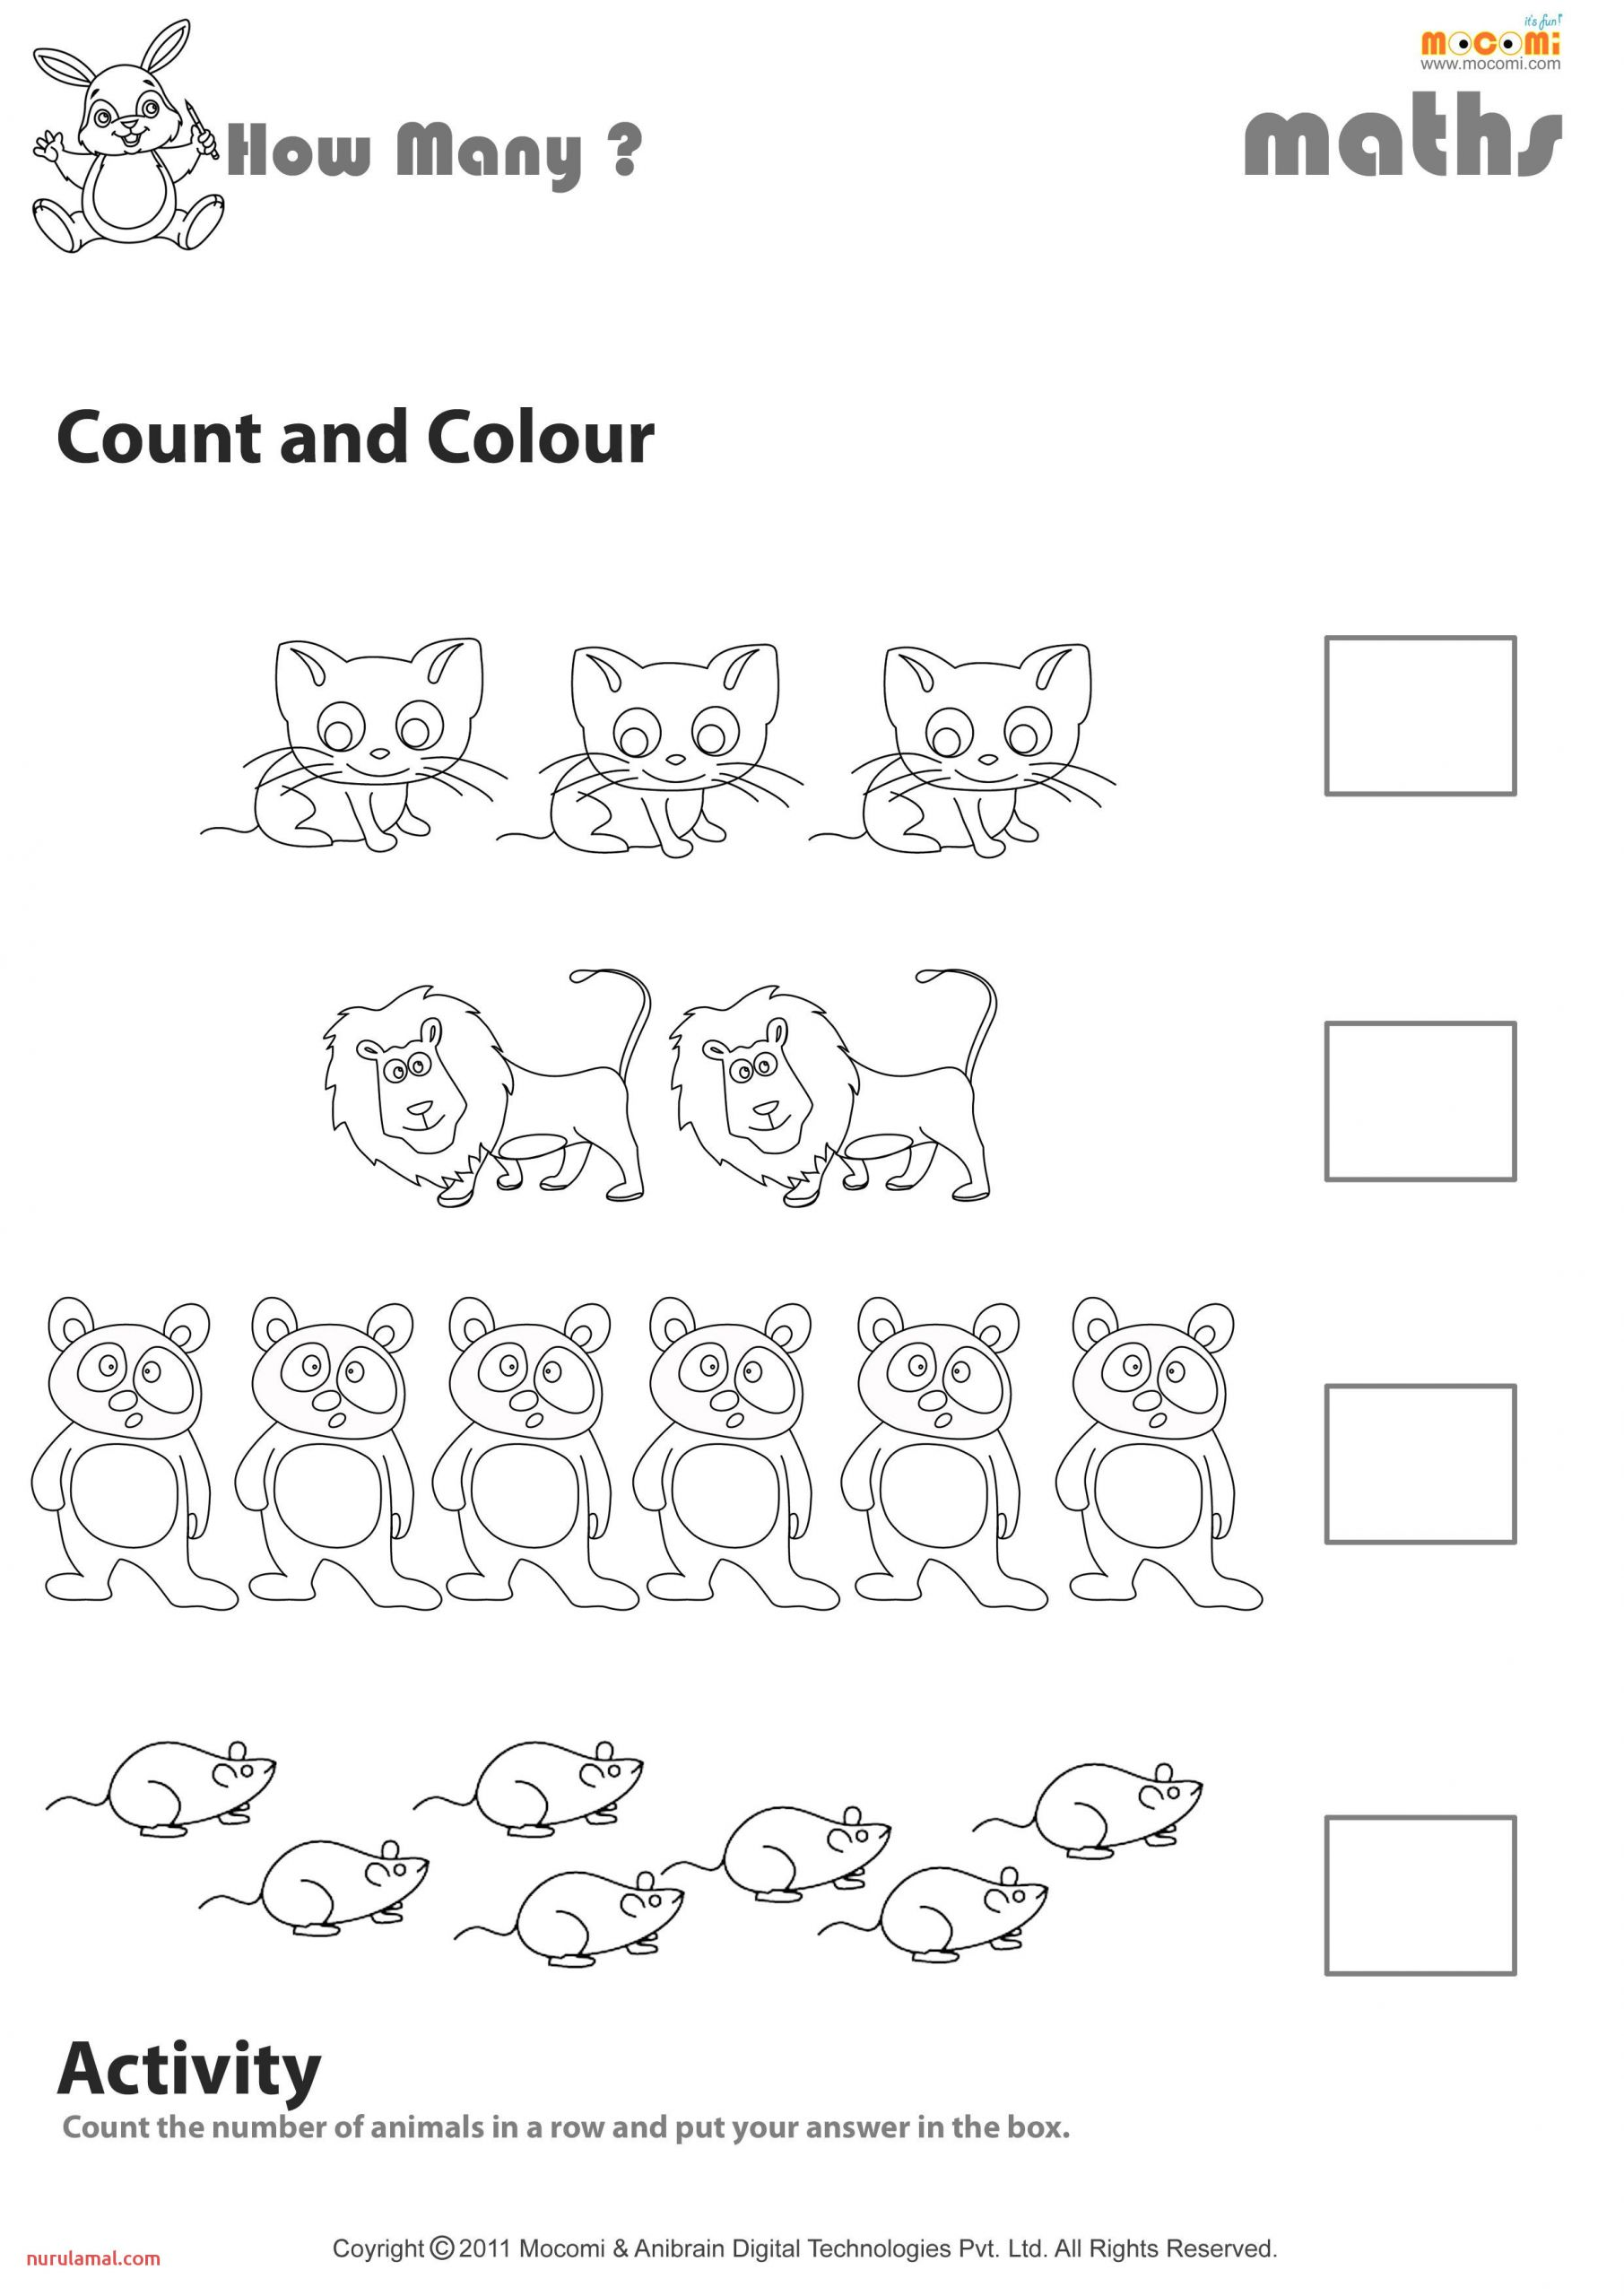 Count and Colour Worksheet Mo I for Kids